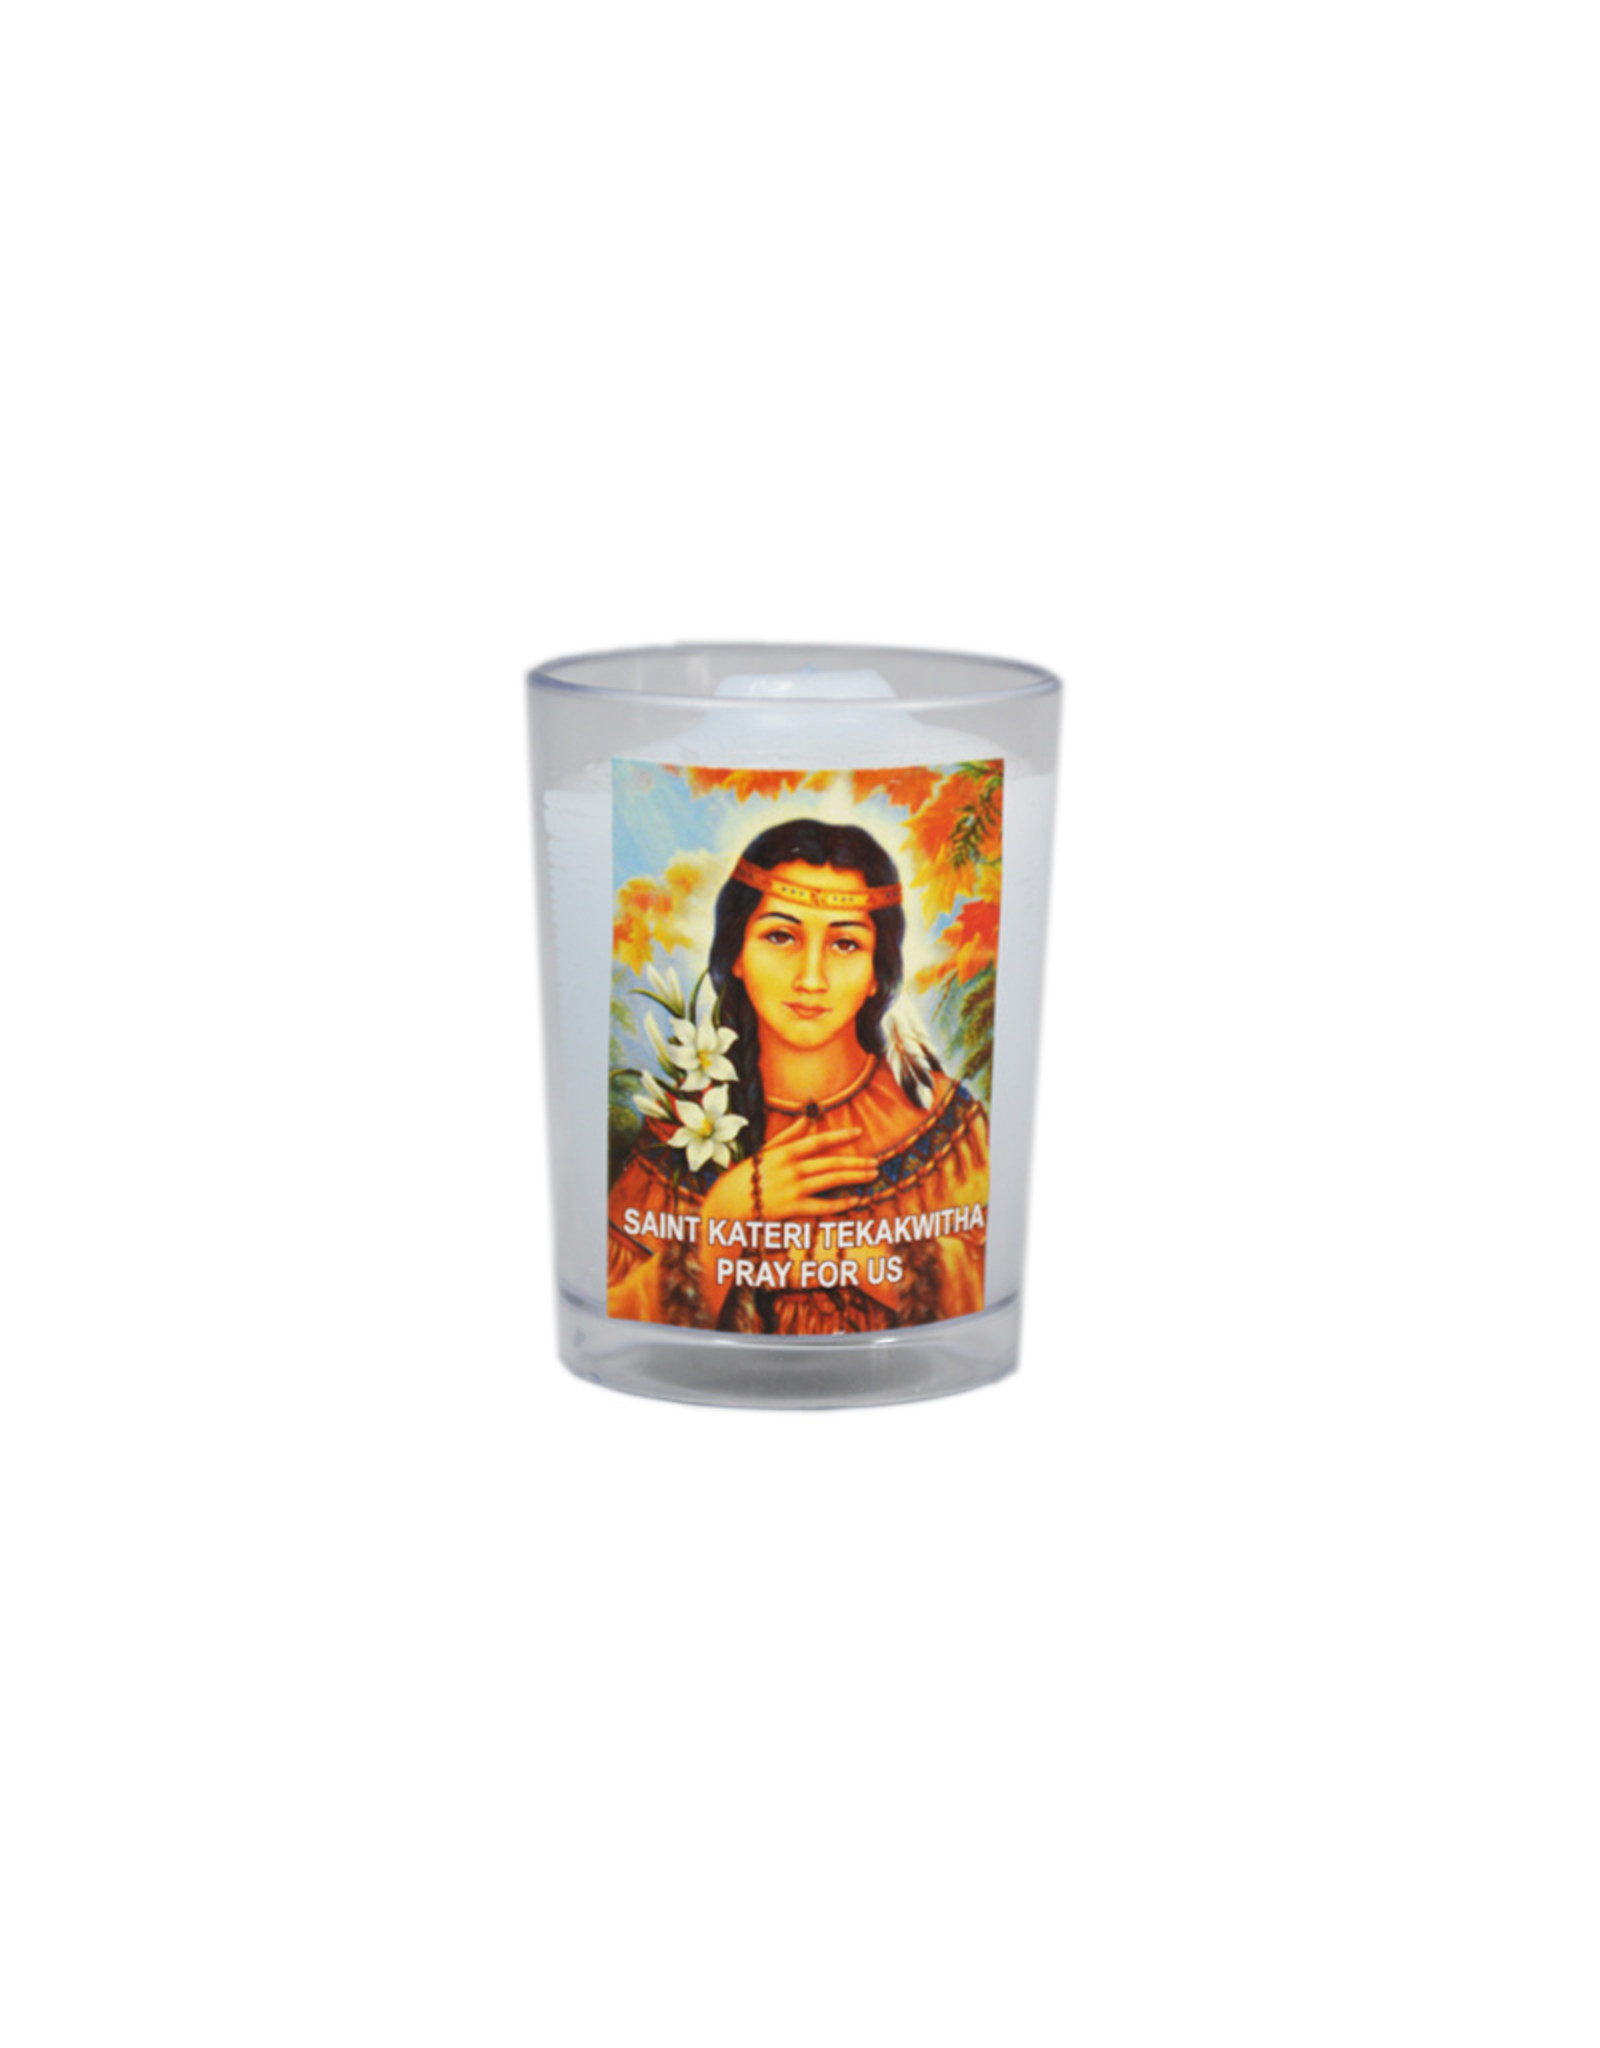 Chandelles Tradition / Tradition Candles Lampion de Kateri Tekakwitha (anglais)